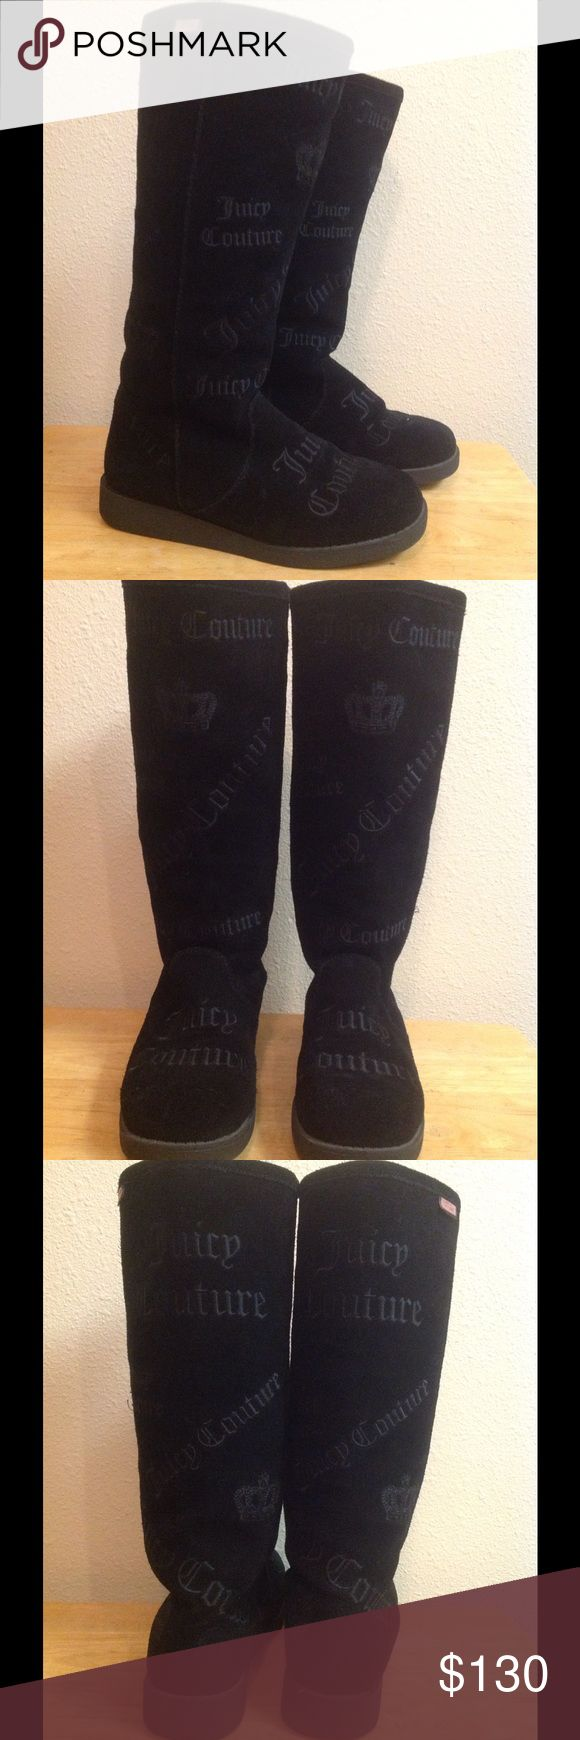 Juicy Couture Boots Gentle used boots. Look new. Please send fair offers. No low balls. 🚫 Trades Juicy Couture Shoes Winter & Rain Boots